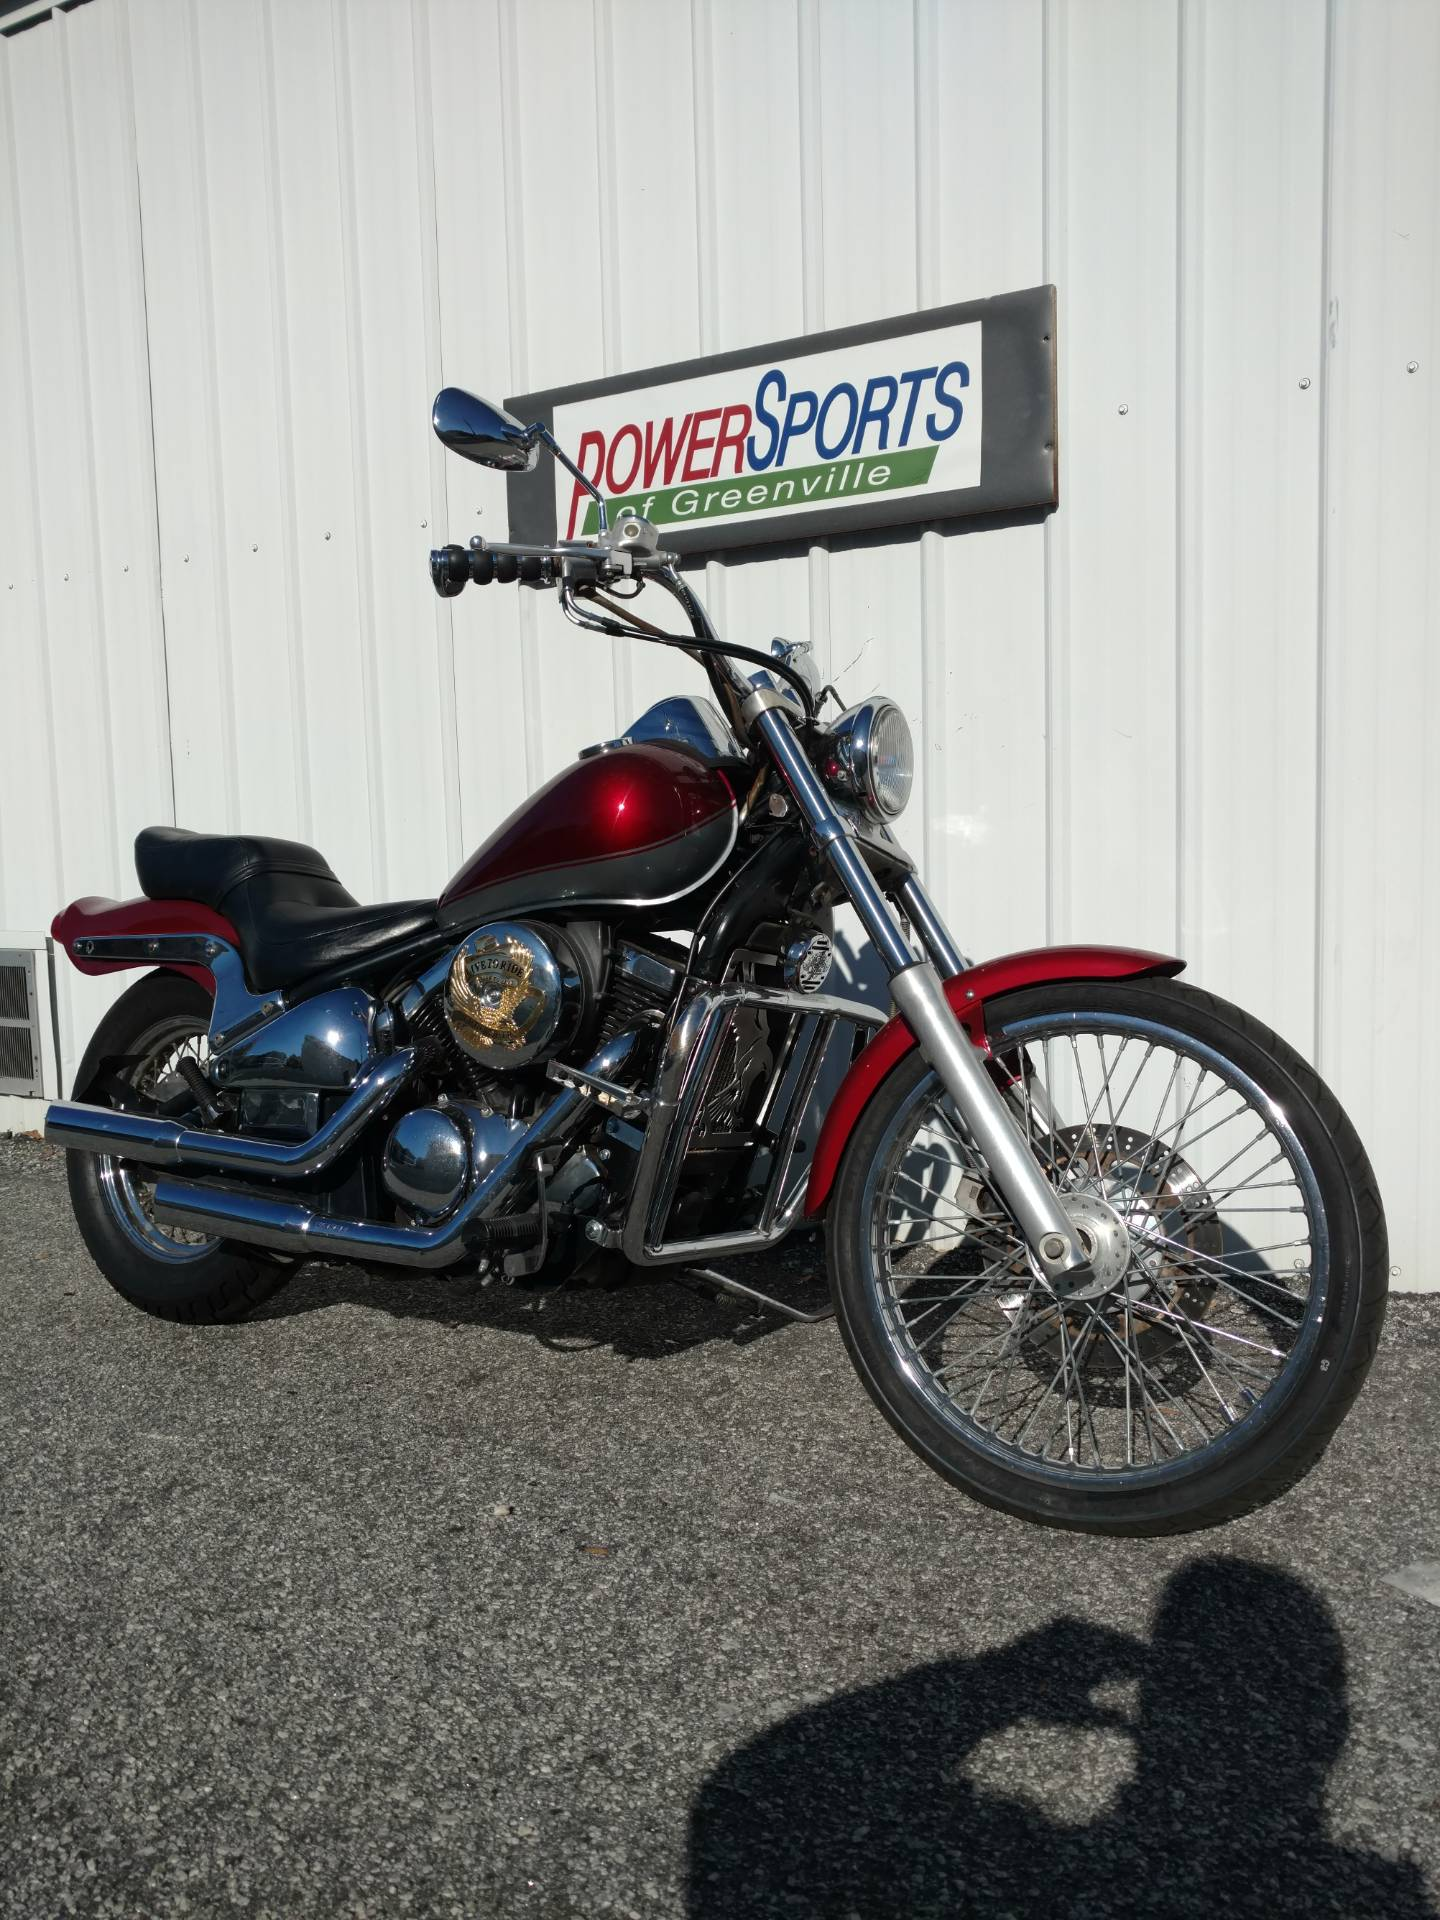 2002 Kawasaki Vulcan 800 Classic in Greenville, South Carolina